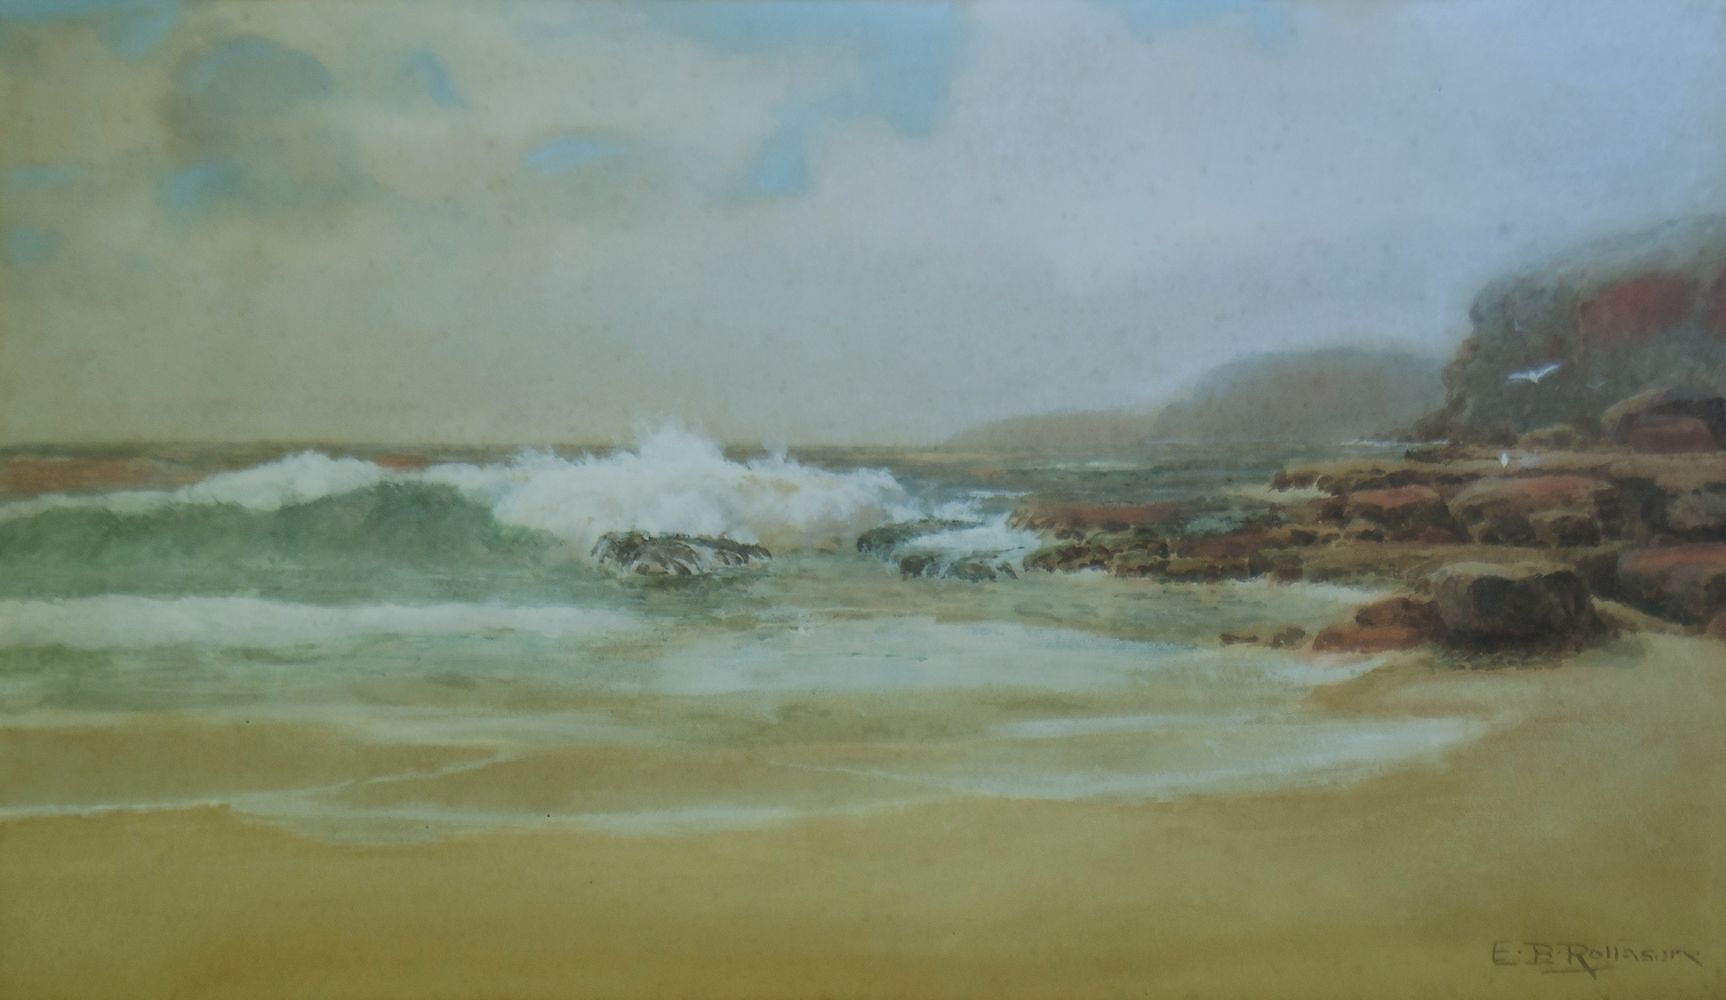 'ROLLASON, E B, Australian Coastal Scene with Gulls Watercolour & Gouache'